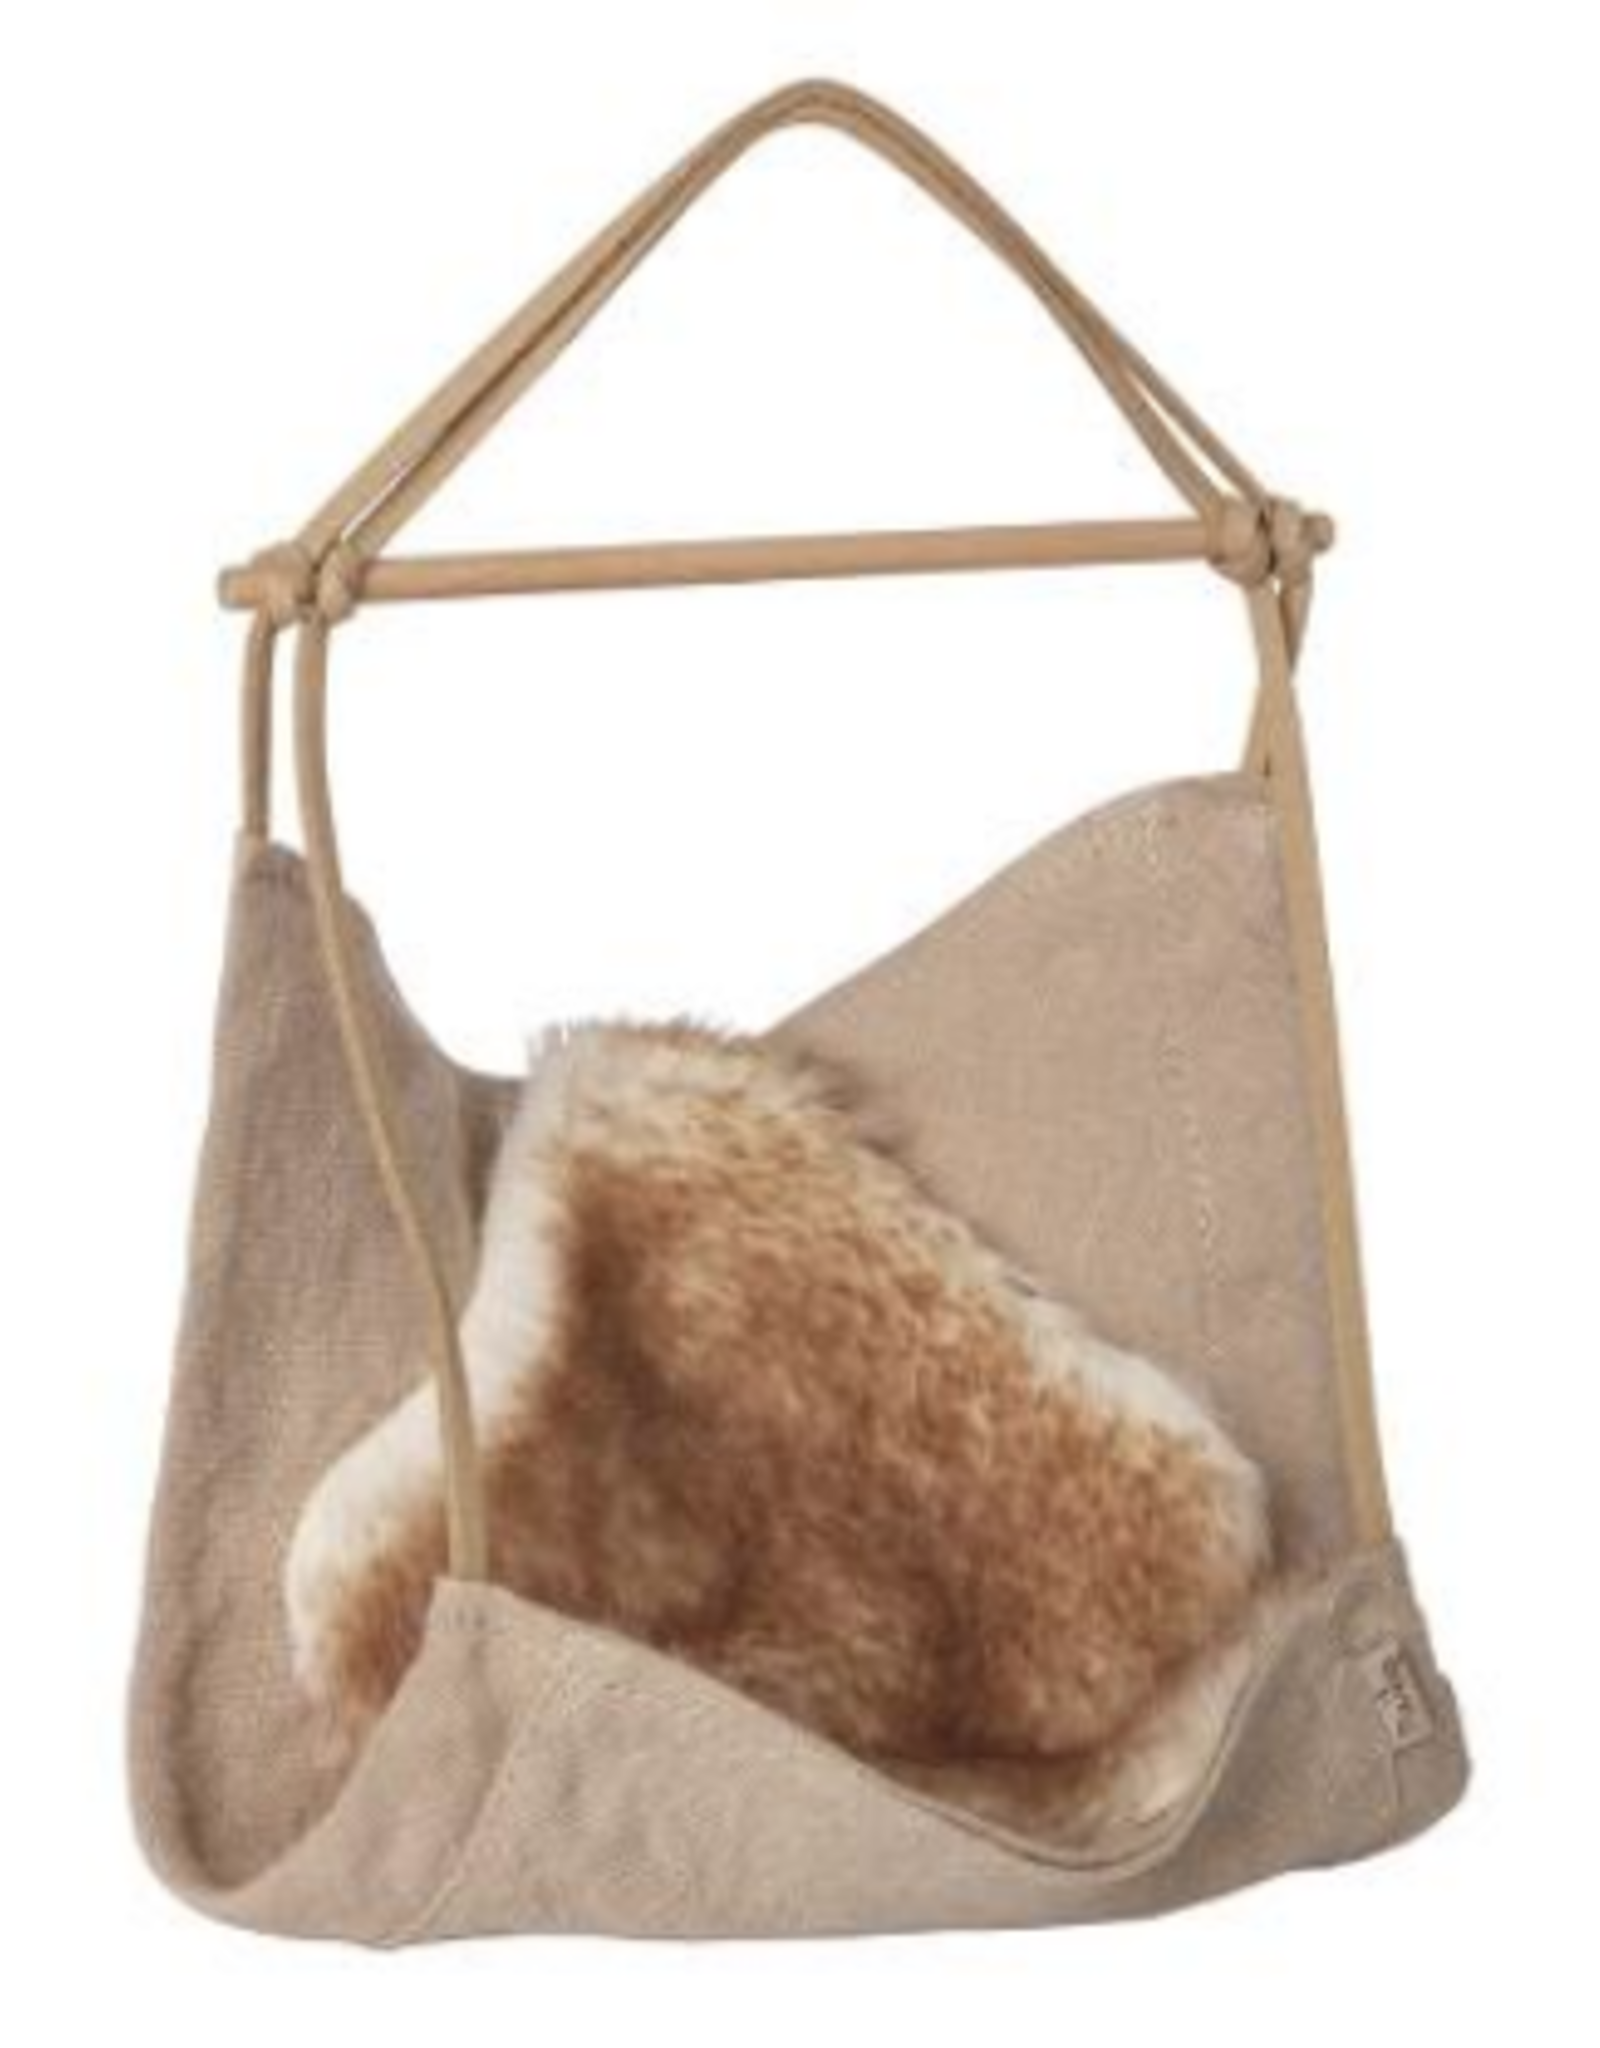 Maileg Maileg - Hanging Chair - Micro